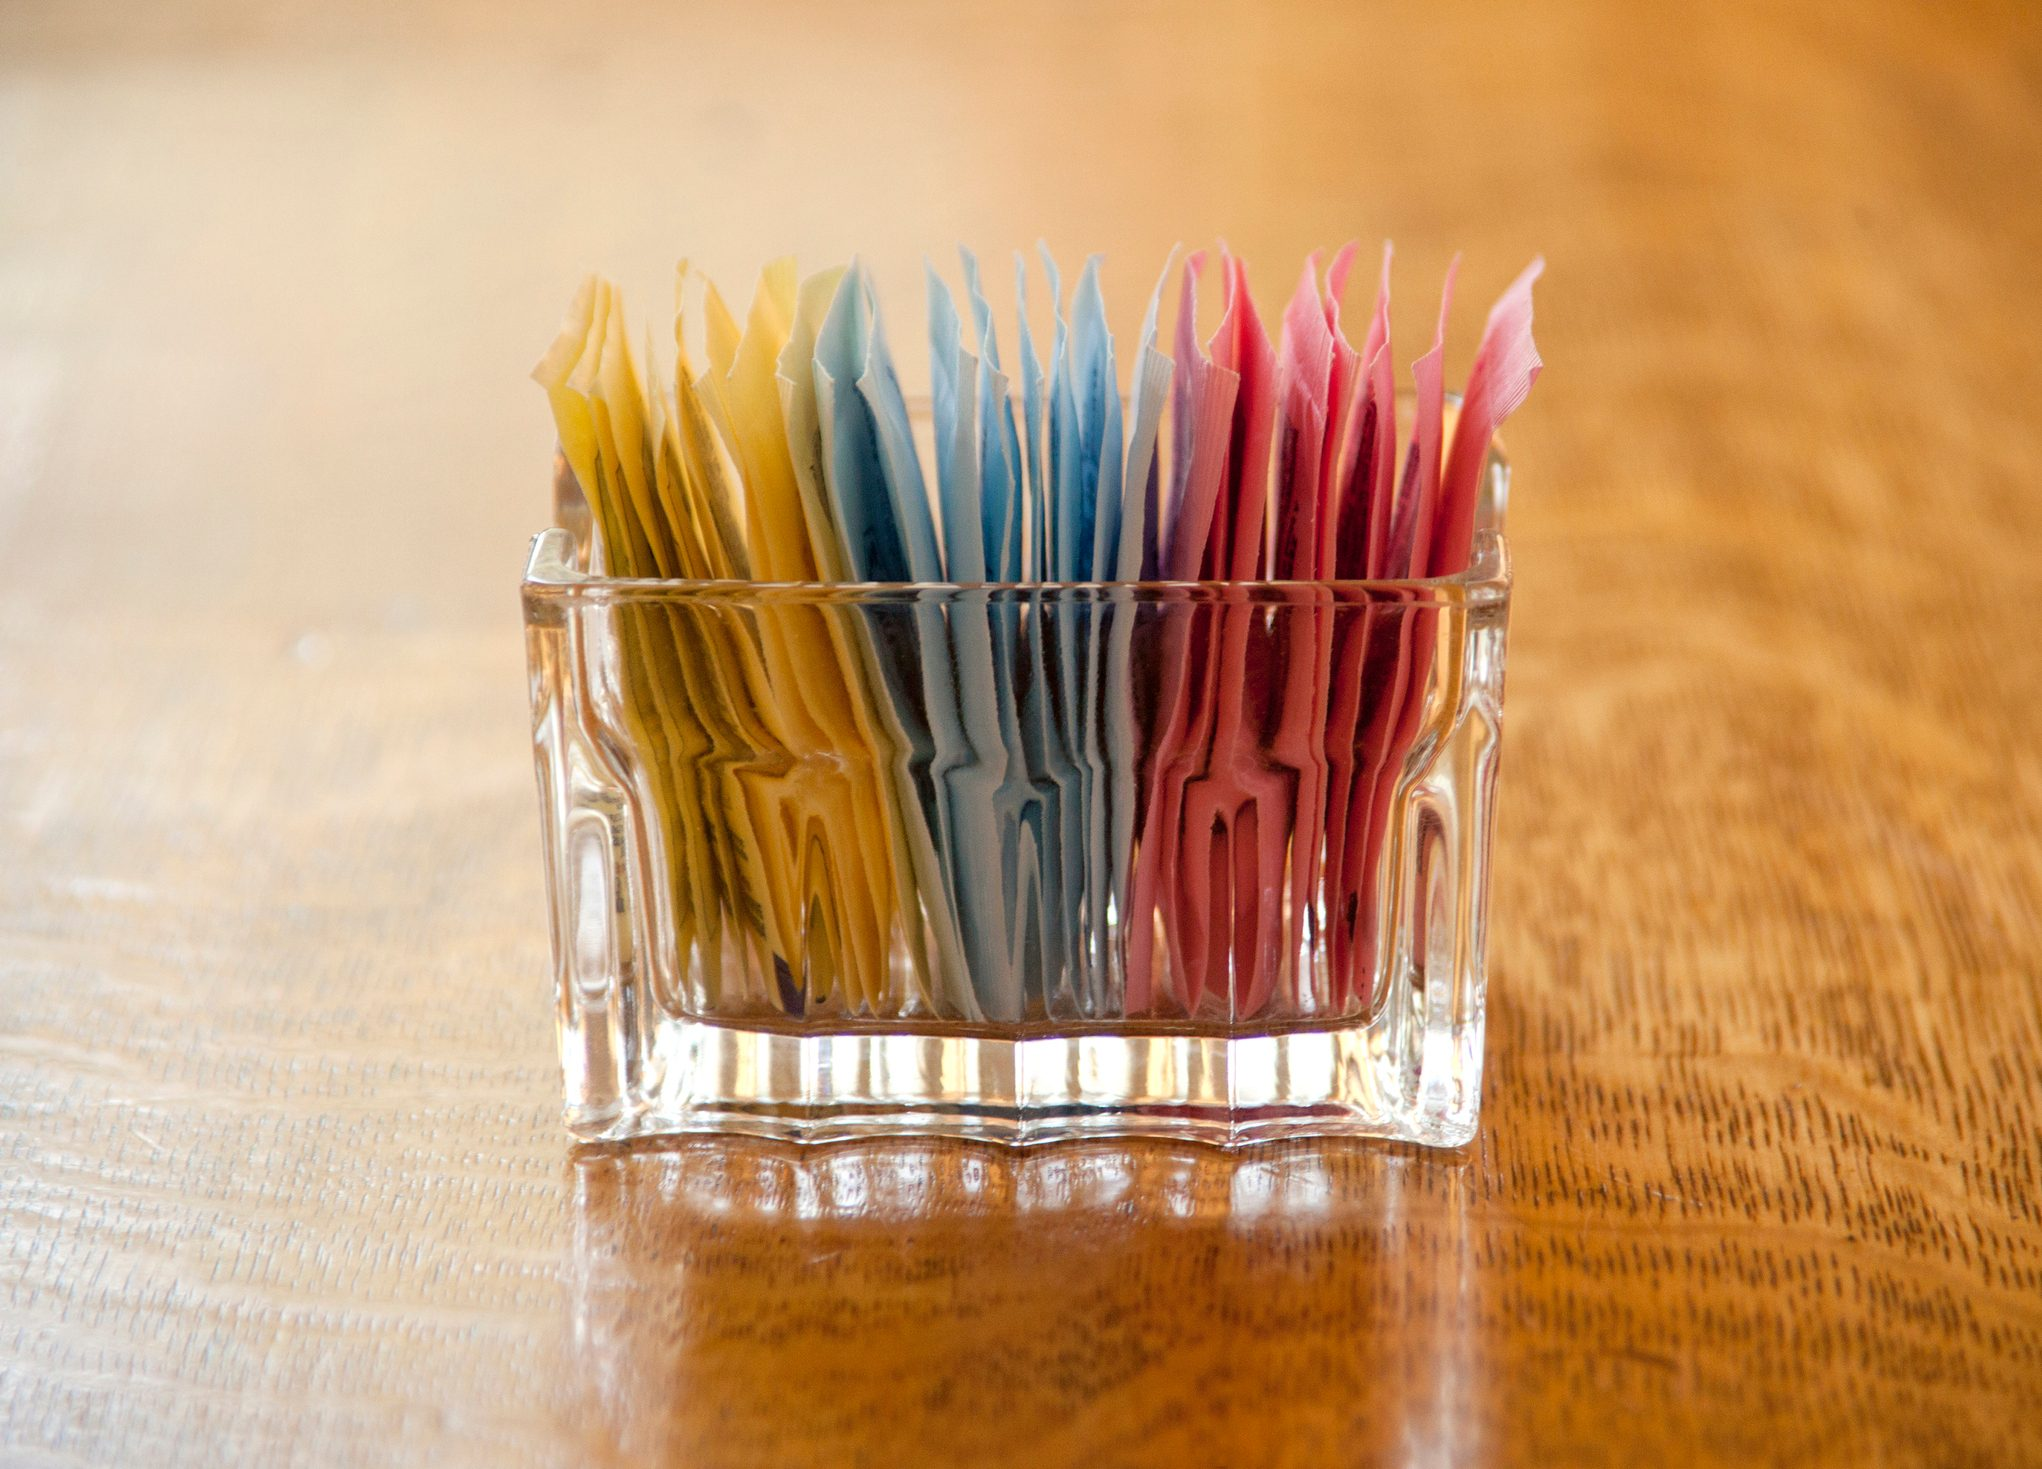 close up of artificial sweetener packs on table in restaurant